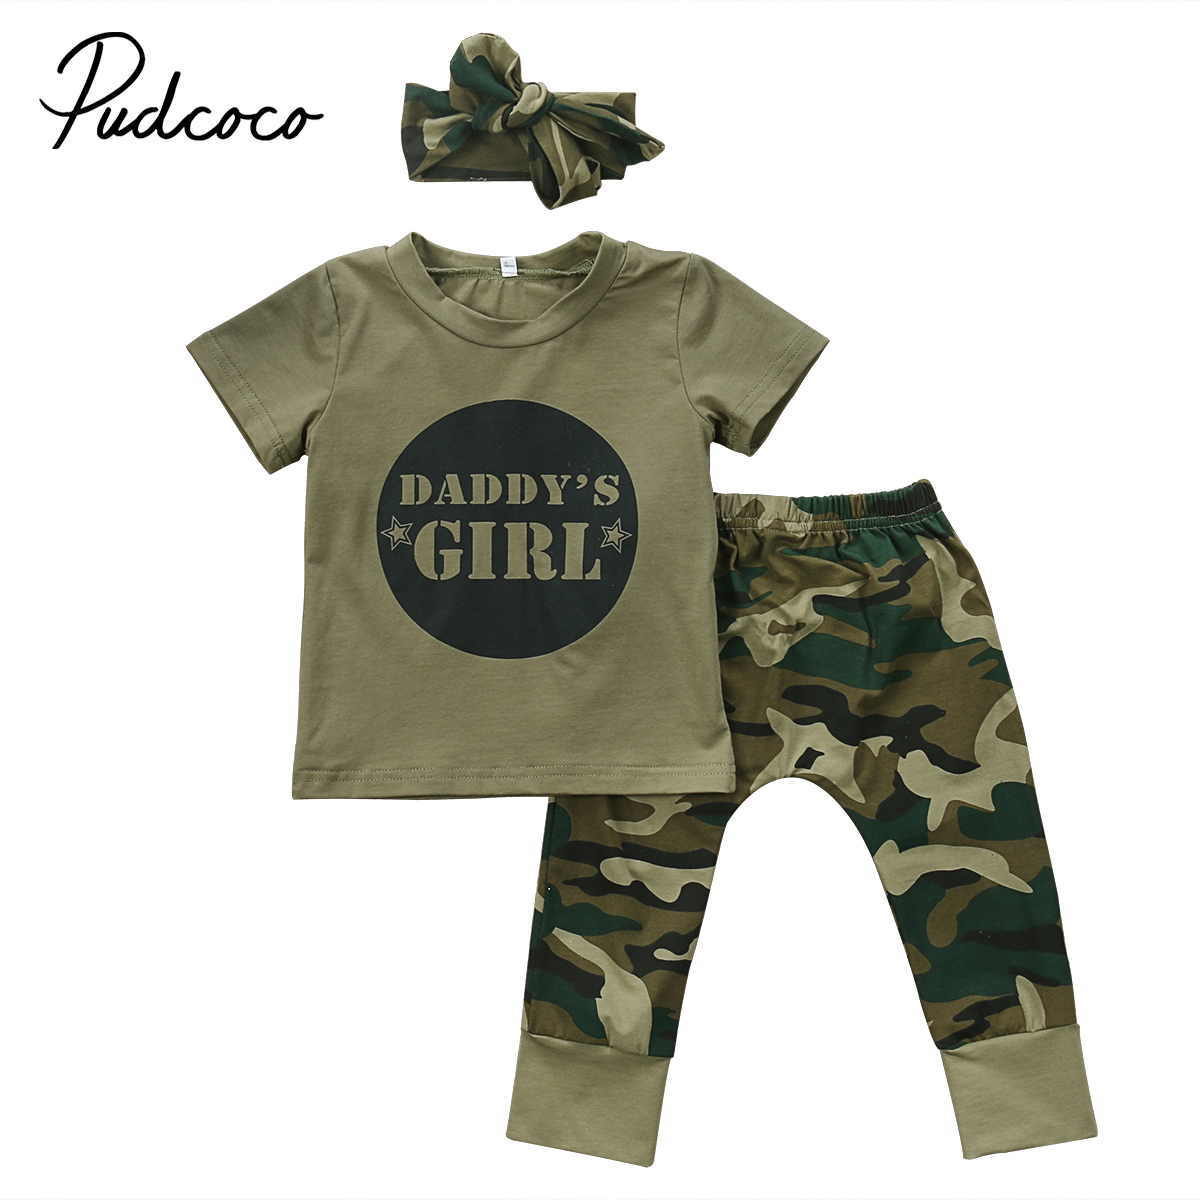 Summer Newborn Baby Boy Girls Camouflage T-shirt Tops+Pants Outfits Set Clothes Army Green Children Letters Print Clothing 0-24M newborn kids baby boy summer clothes set t shirt tops pants outfits boys sets 2pcs 0 3y camouflage